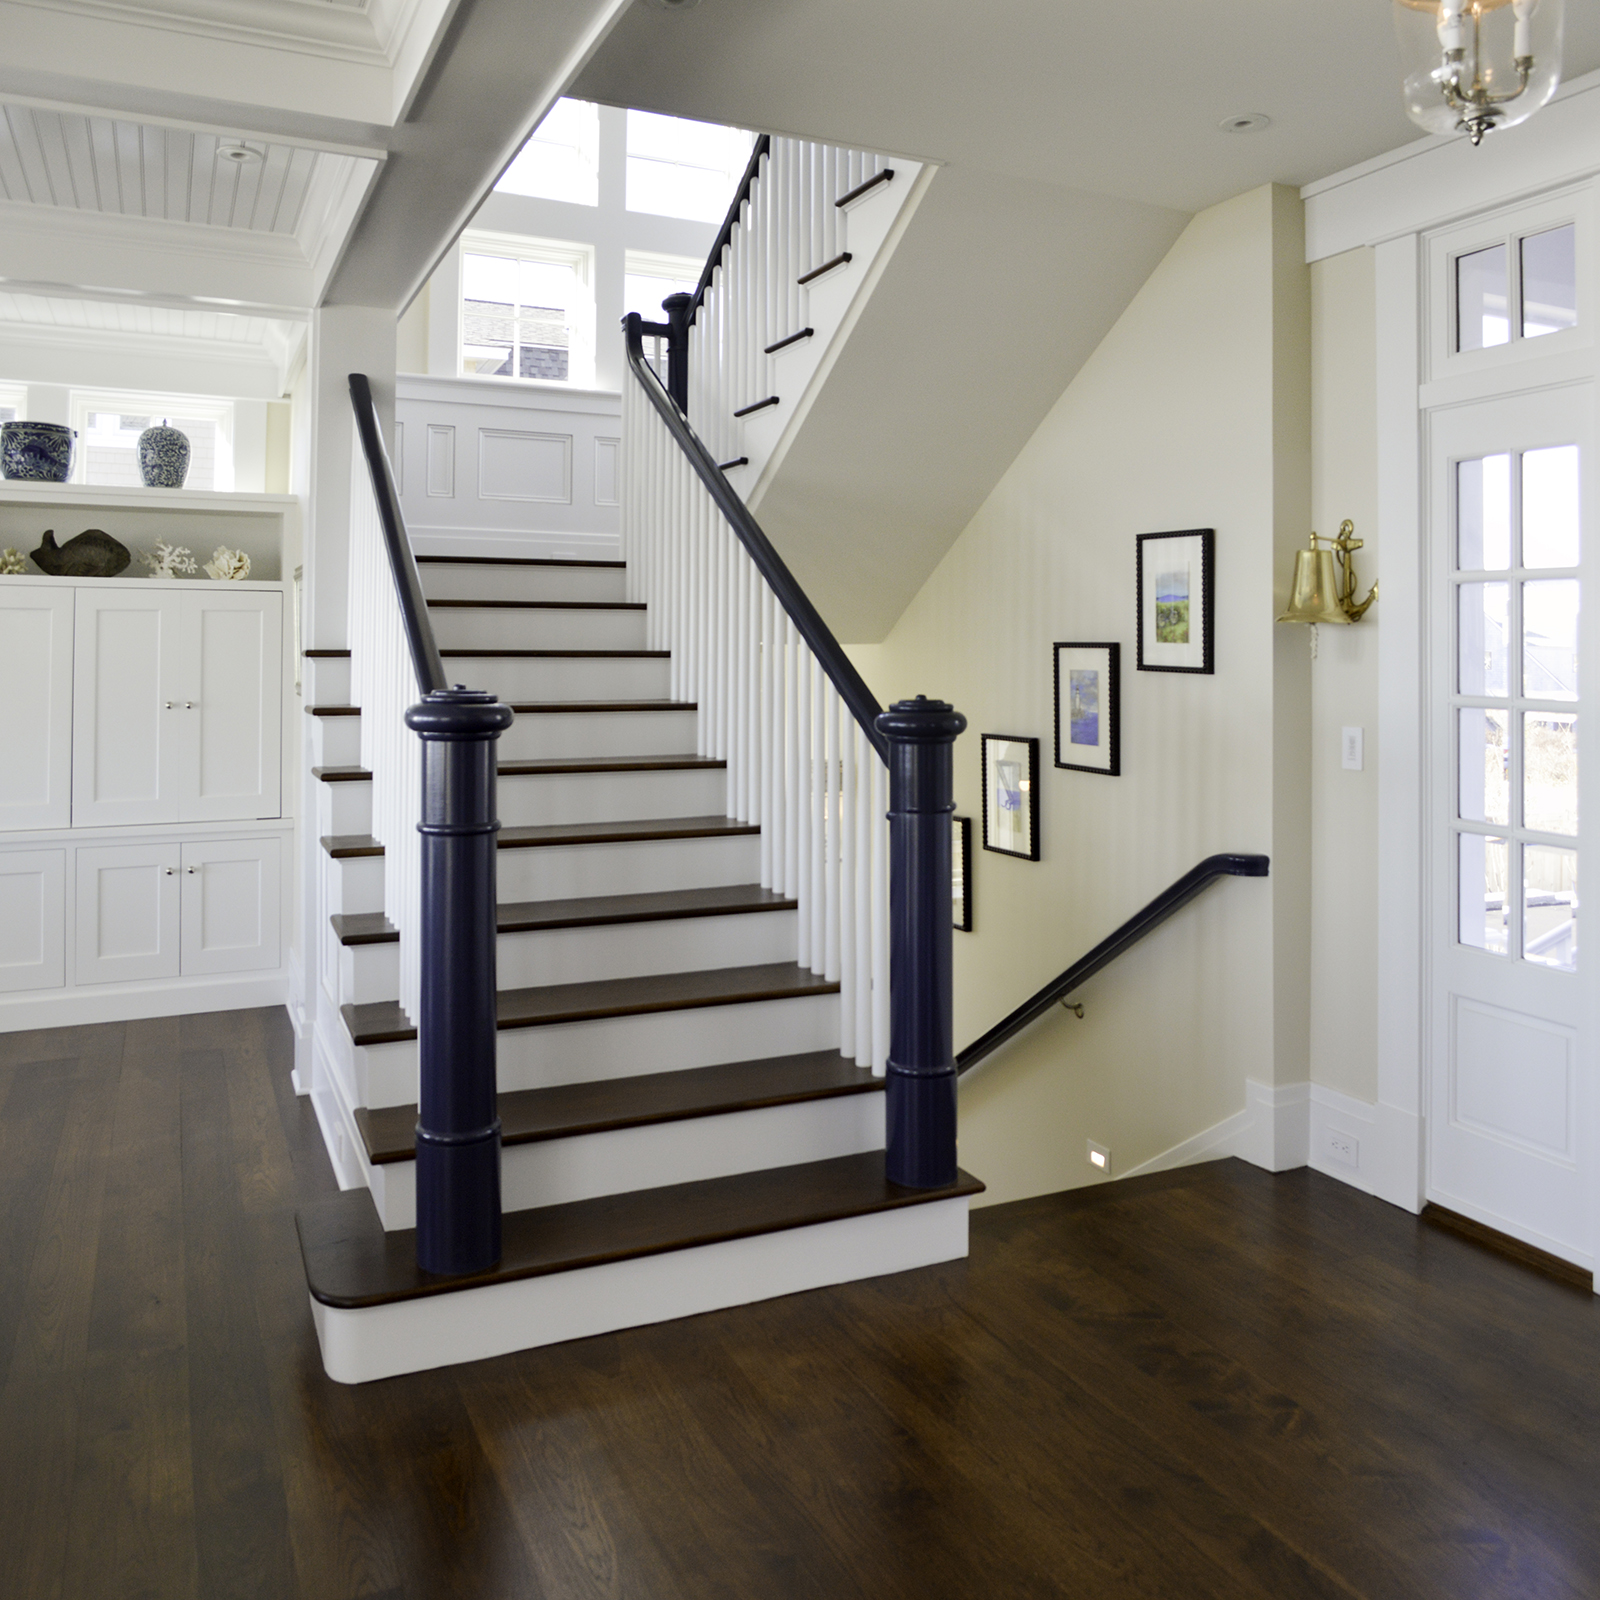 Staircase at Pine Point, Custom Home Construction in Southern Maine